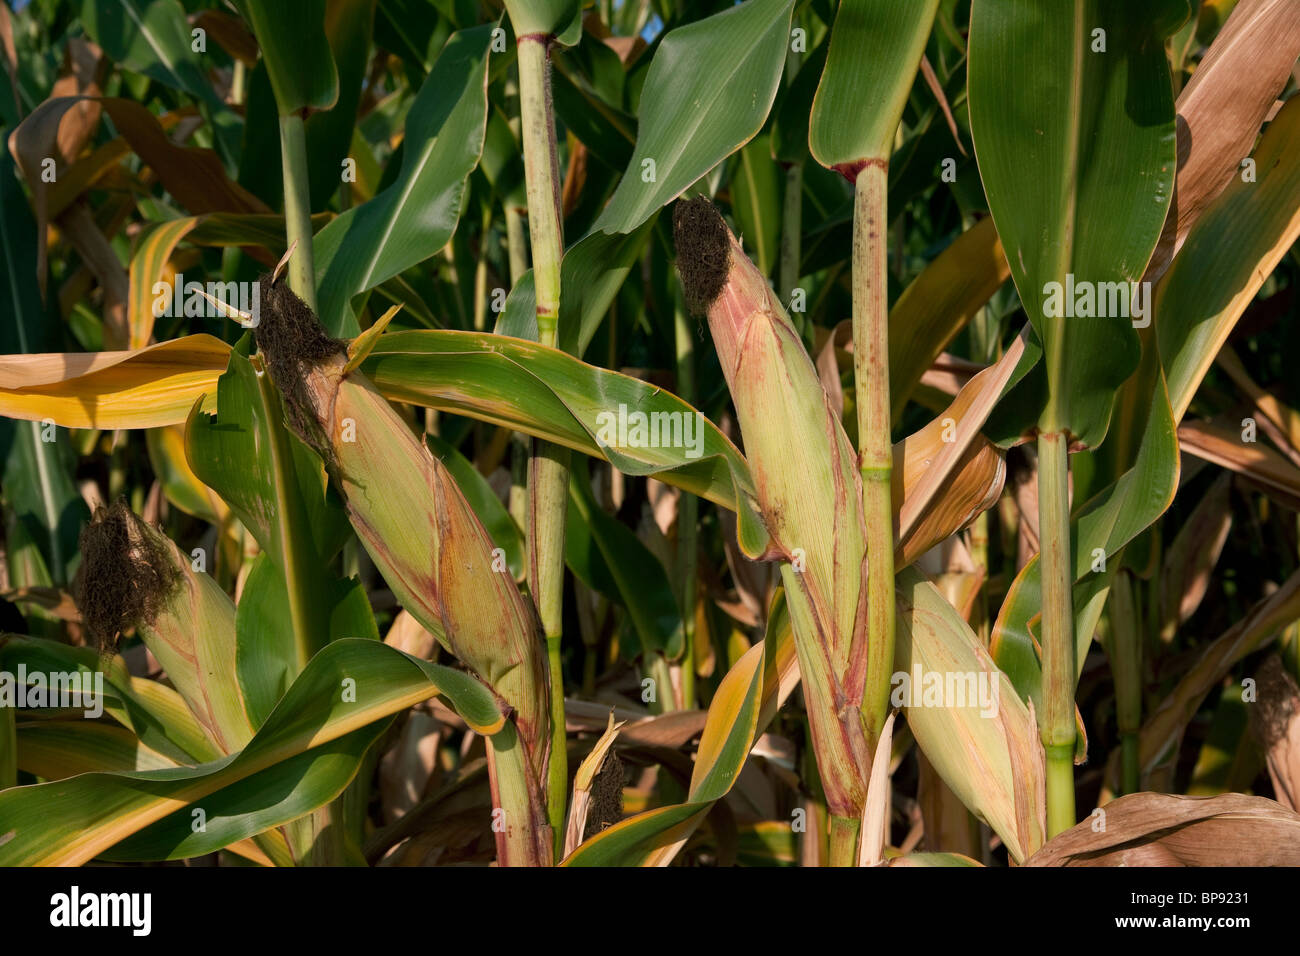 Ripened Corn Michigan USA mid August - Stock Image